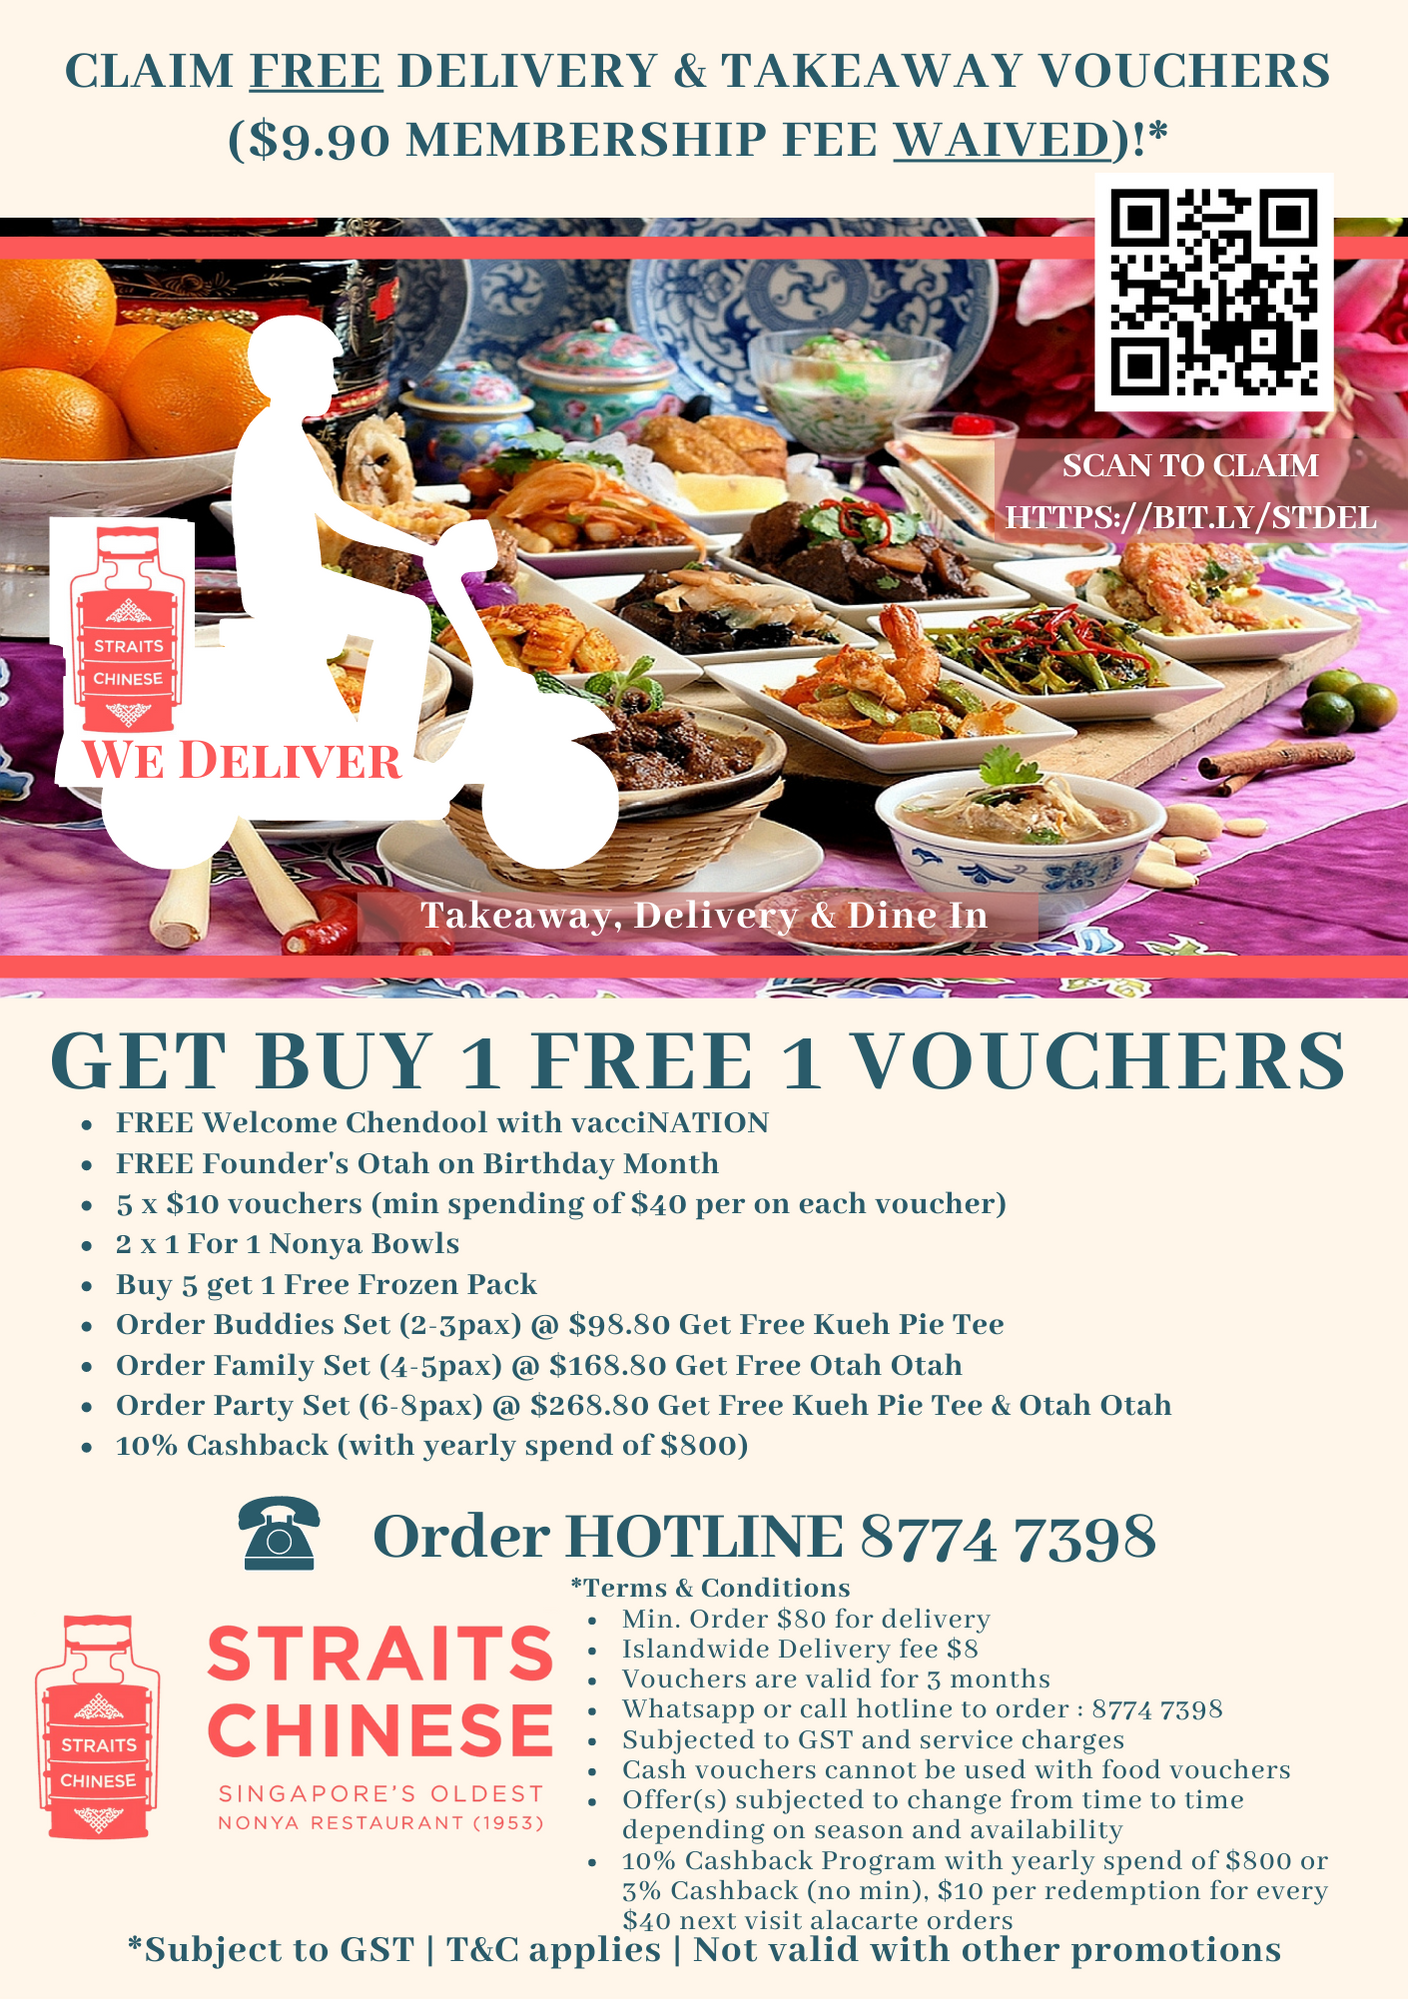 FREE TAKEAWAY DELIVERY VOUCHERS - GOLD MEMBERSHIP